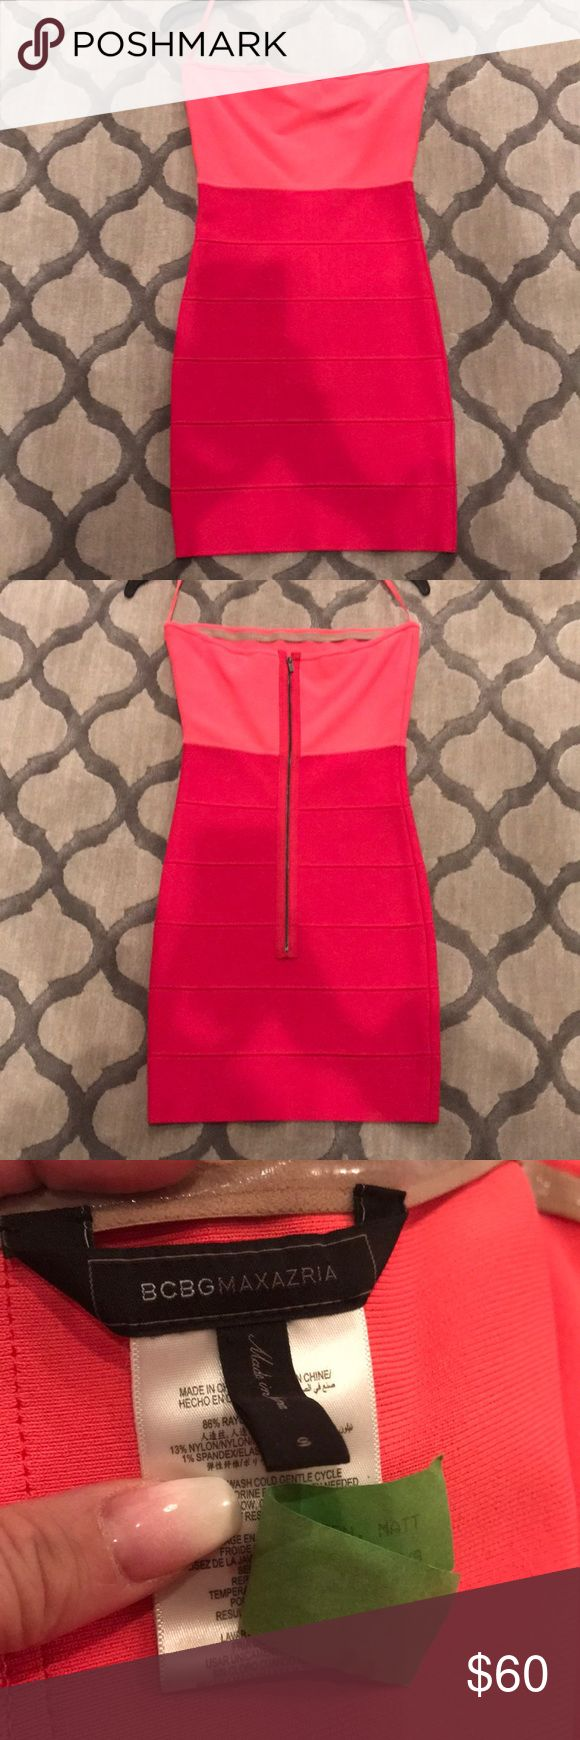 """BCBG Bandage Dress- pink strapless - size S BCBG Bandage Dress- pink strapless - size S. So hot for Valentines Day night out, when you just don't want to do """"red"""". Bandage material is high quality with a zipper in the back and eye hook at top. Only a small dark spot on front which my finger is pointing to. (See pics). Has been dry cleaned. BCBGMaxAzria Dresses Mini"""